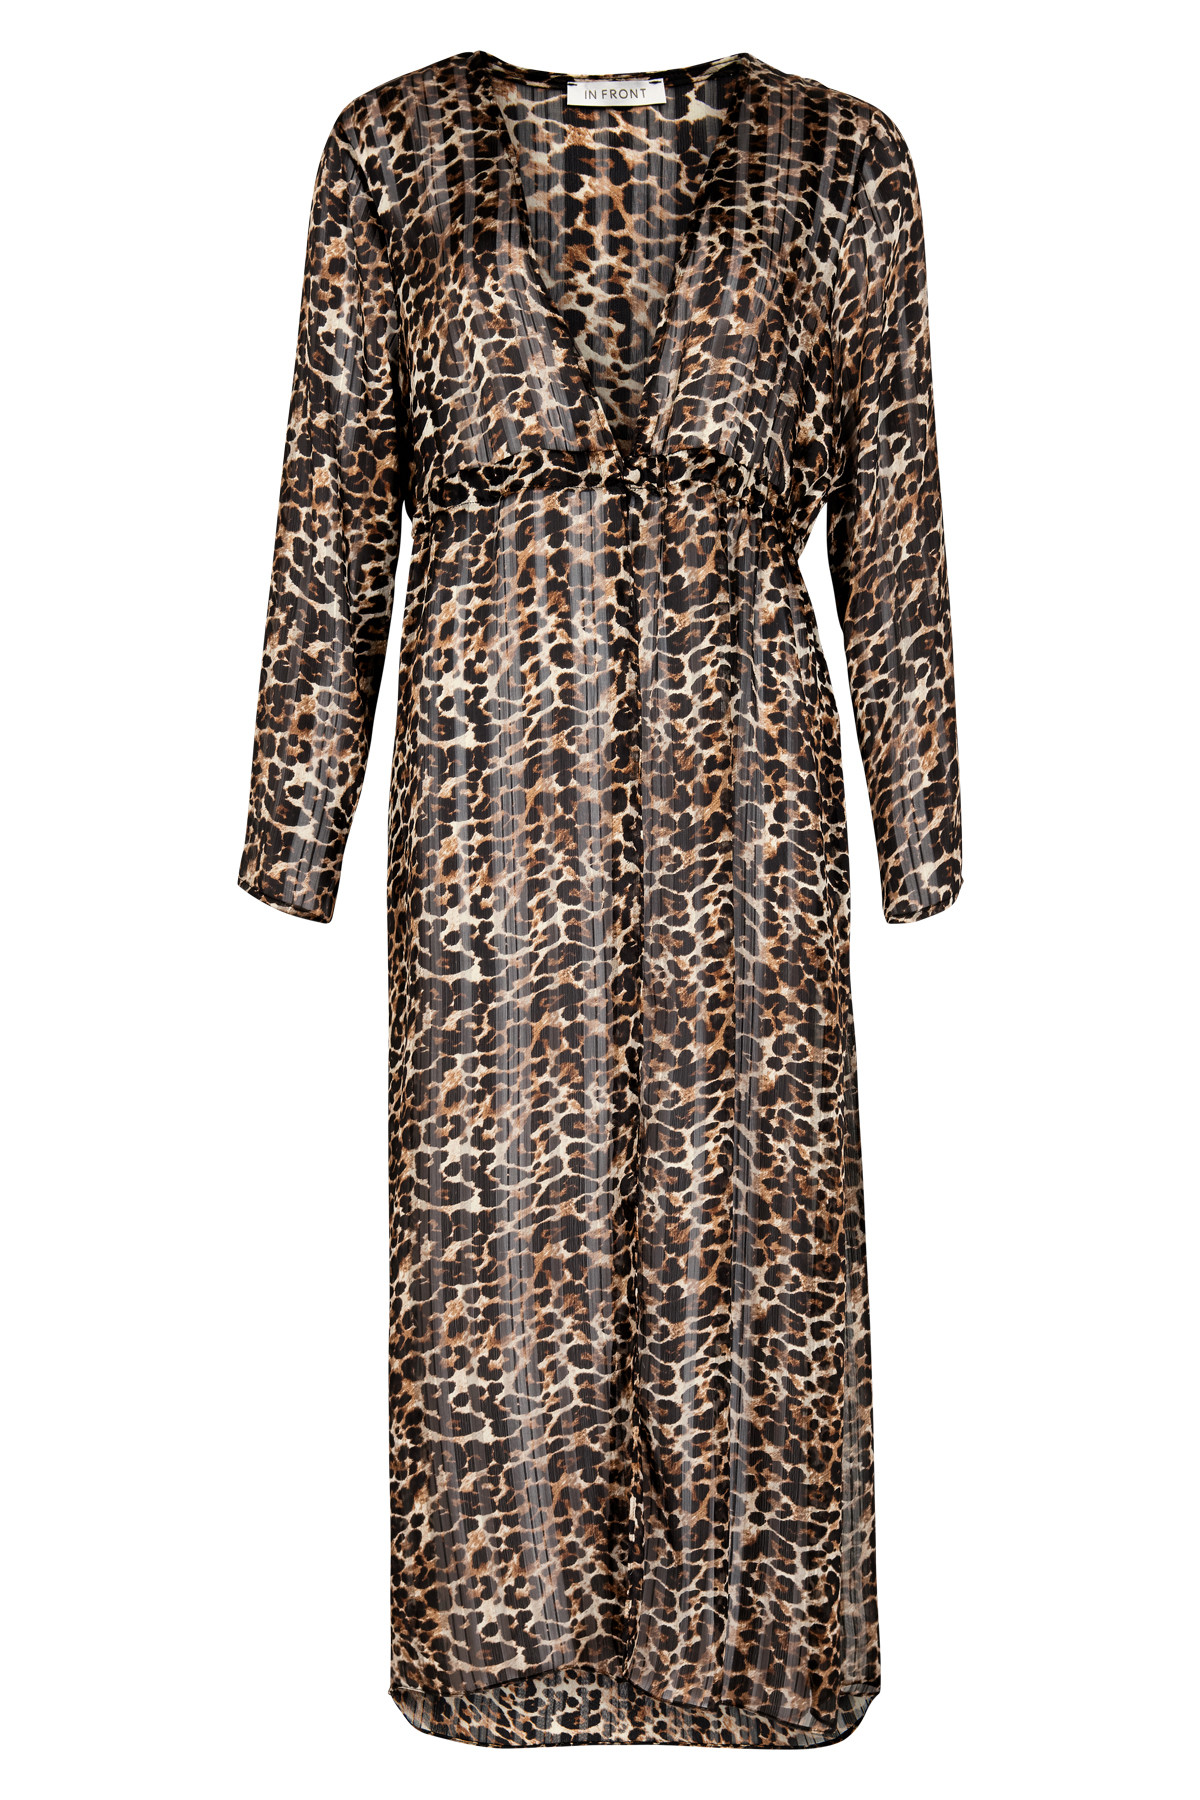 Image of   IN FRONT ANNA LANG LEOPARD CARIGAN 13056 (Dark Coffee 809, S)